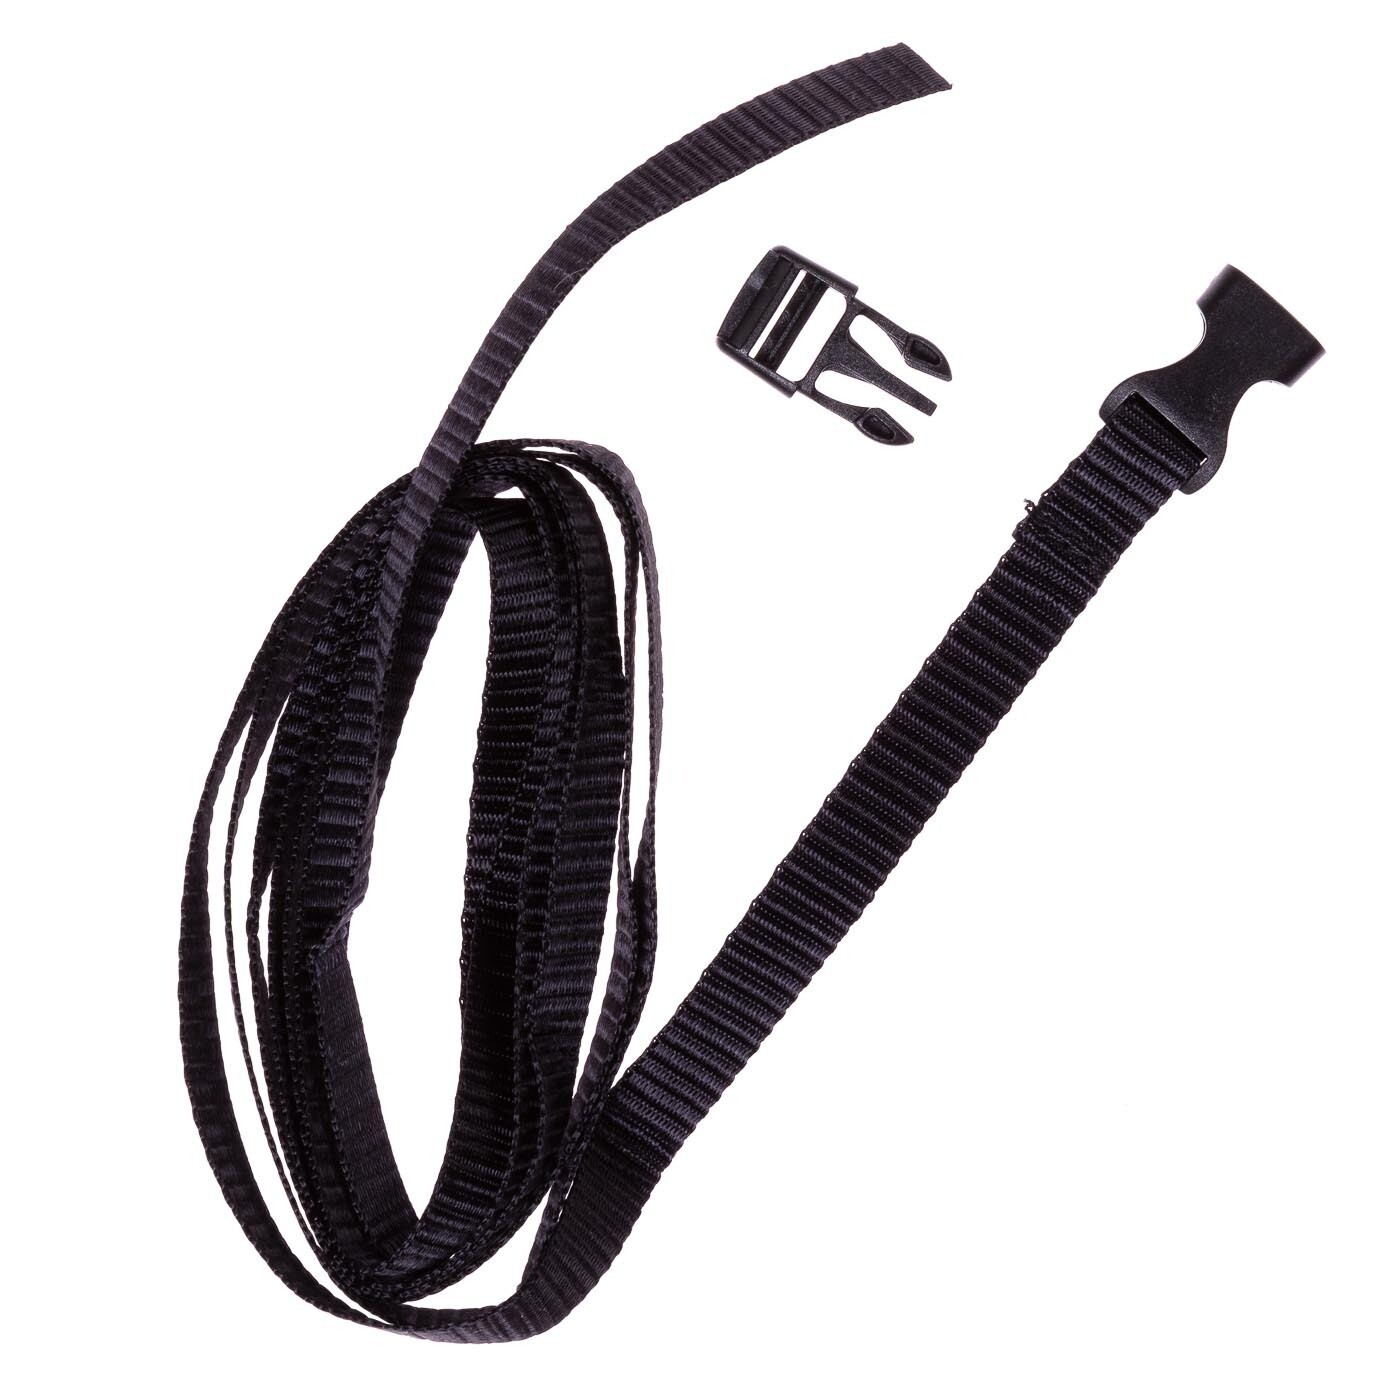 Nylon straps, 2 pieces (150 cm) with side release buckle to secure your seat pad.